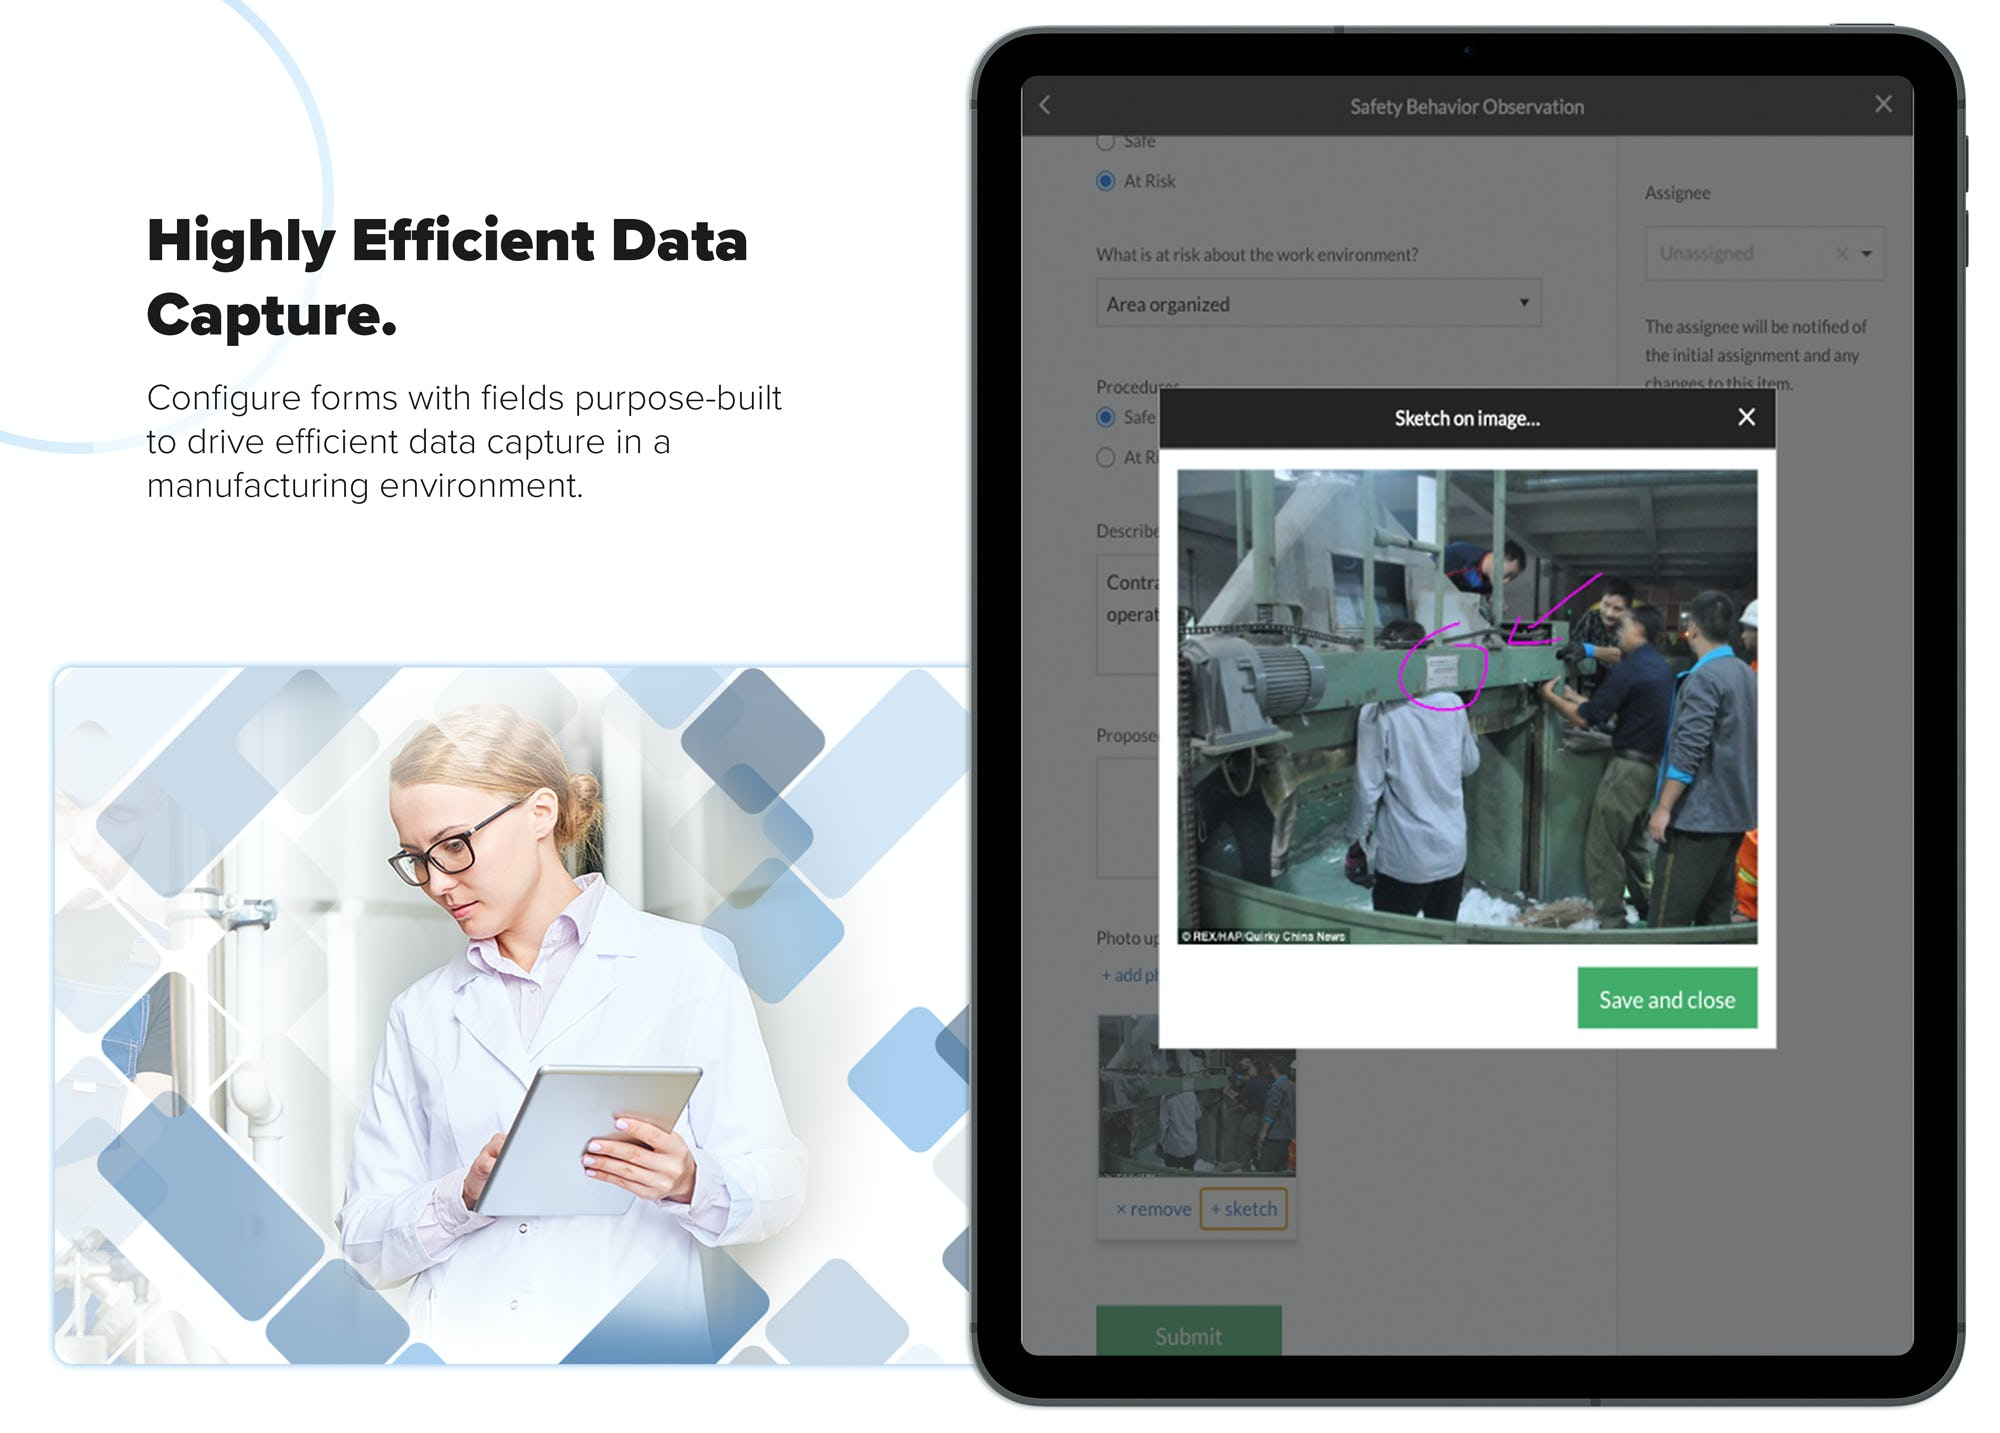 Highly Efficient Data Capture - Configure forms with fields purpose-built to drive efficient data capture in a manufacturing environment.